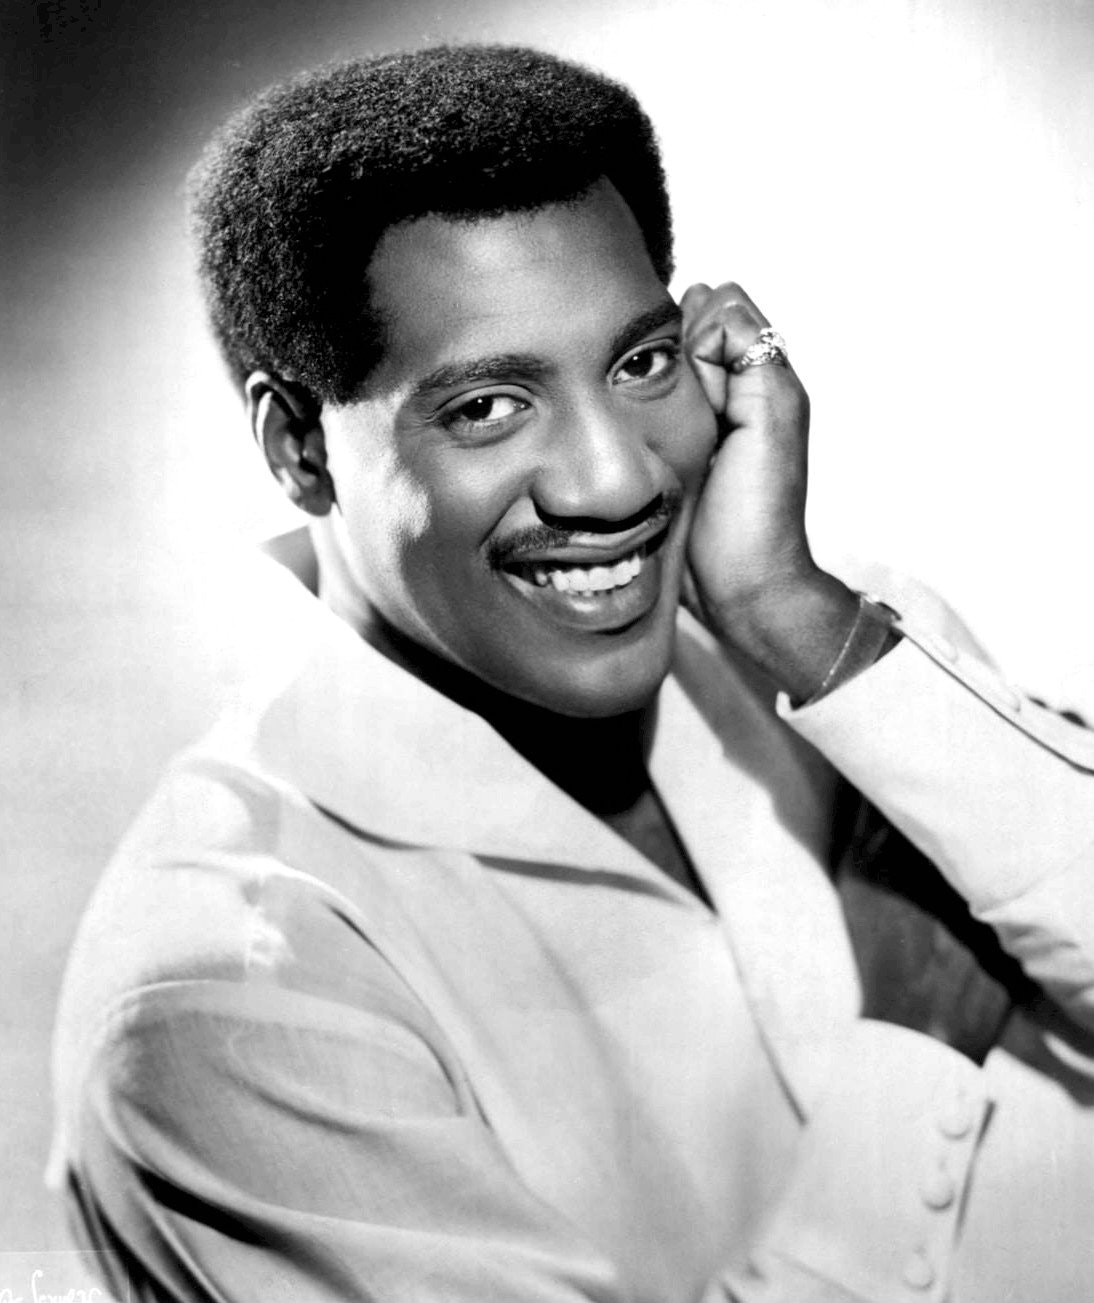 A promo shot of Otis Redding.